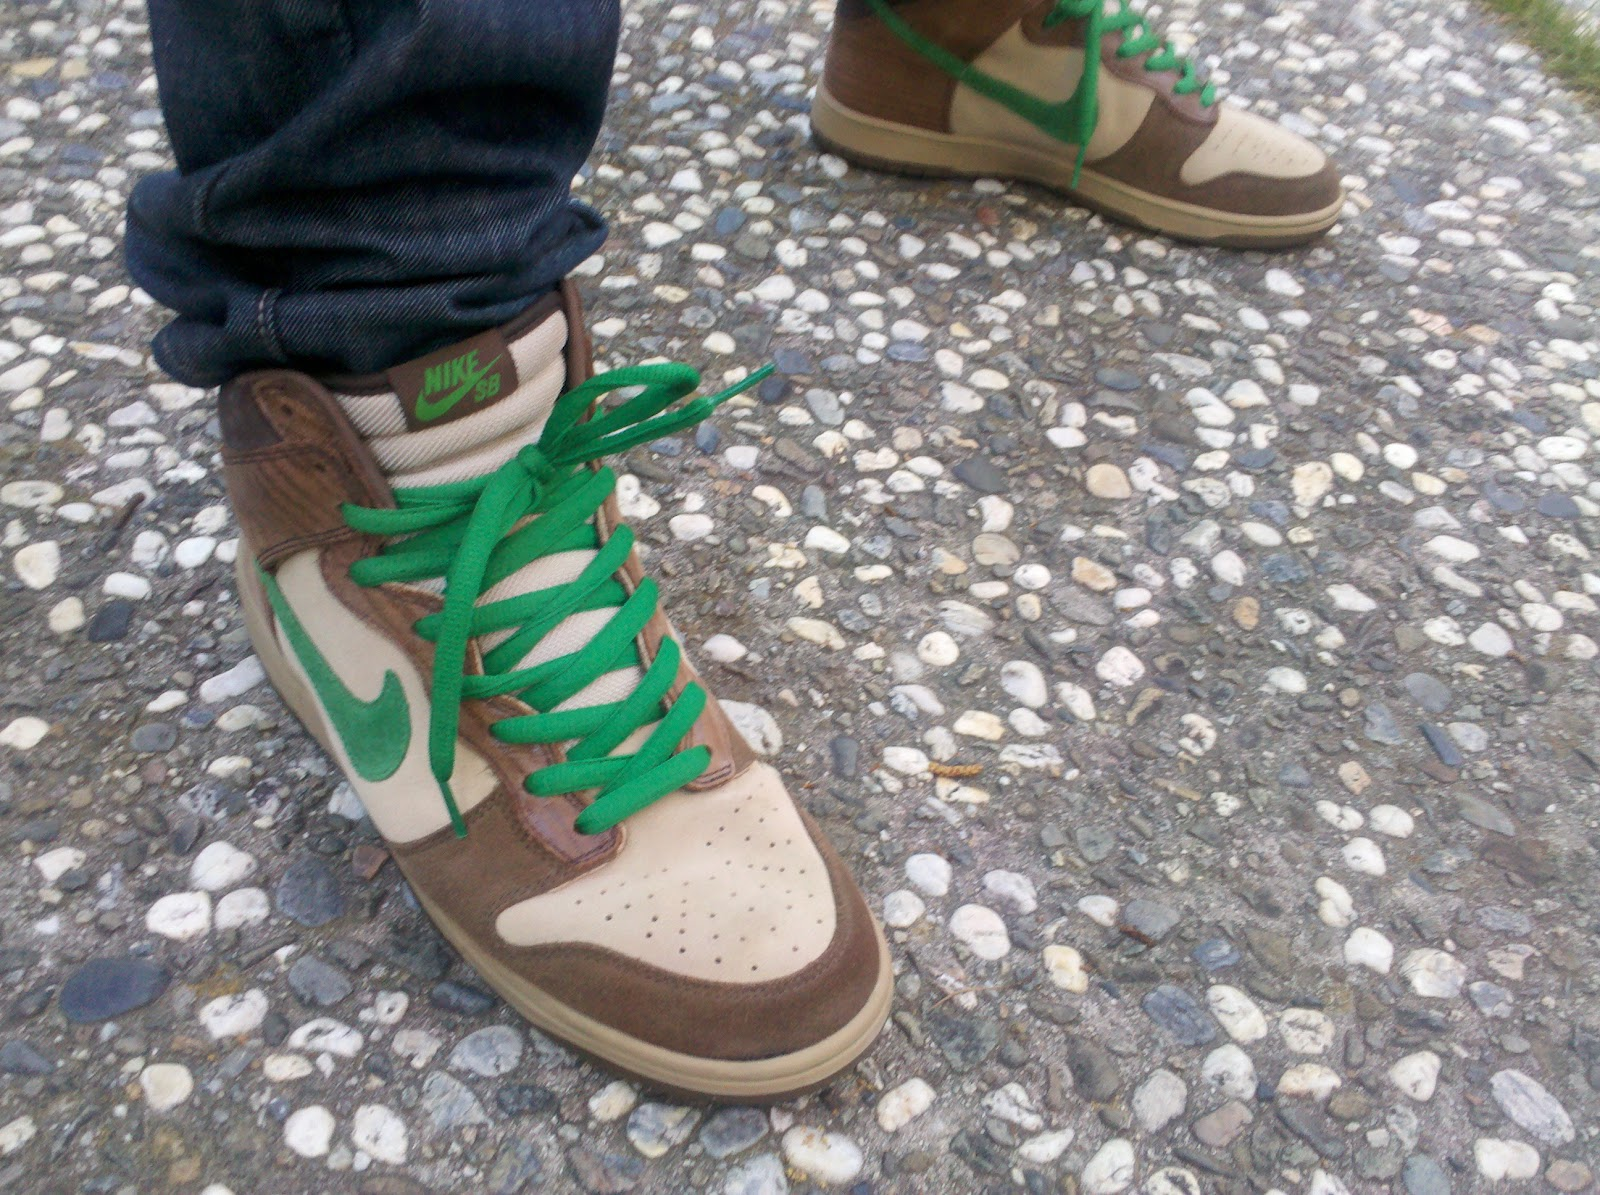 b35bd852cd3 KickItFresh Sneaker Photo Blog  SNEAKER REVIEW - DUNK HIGH SB